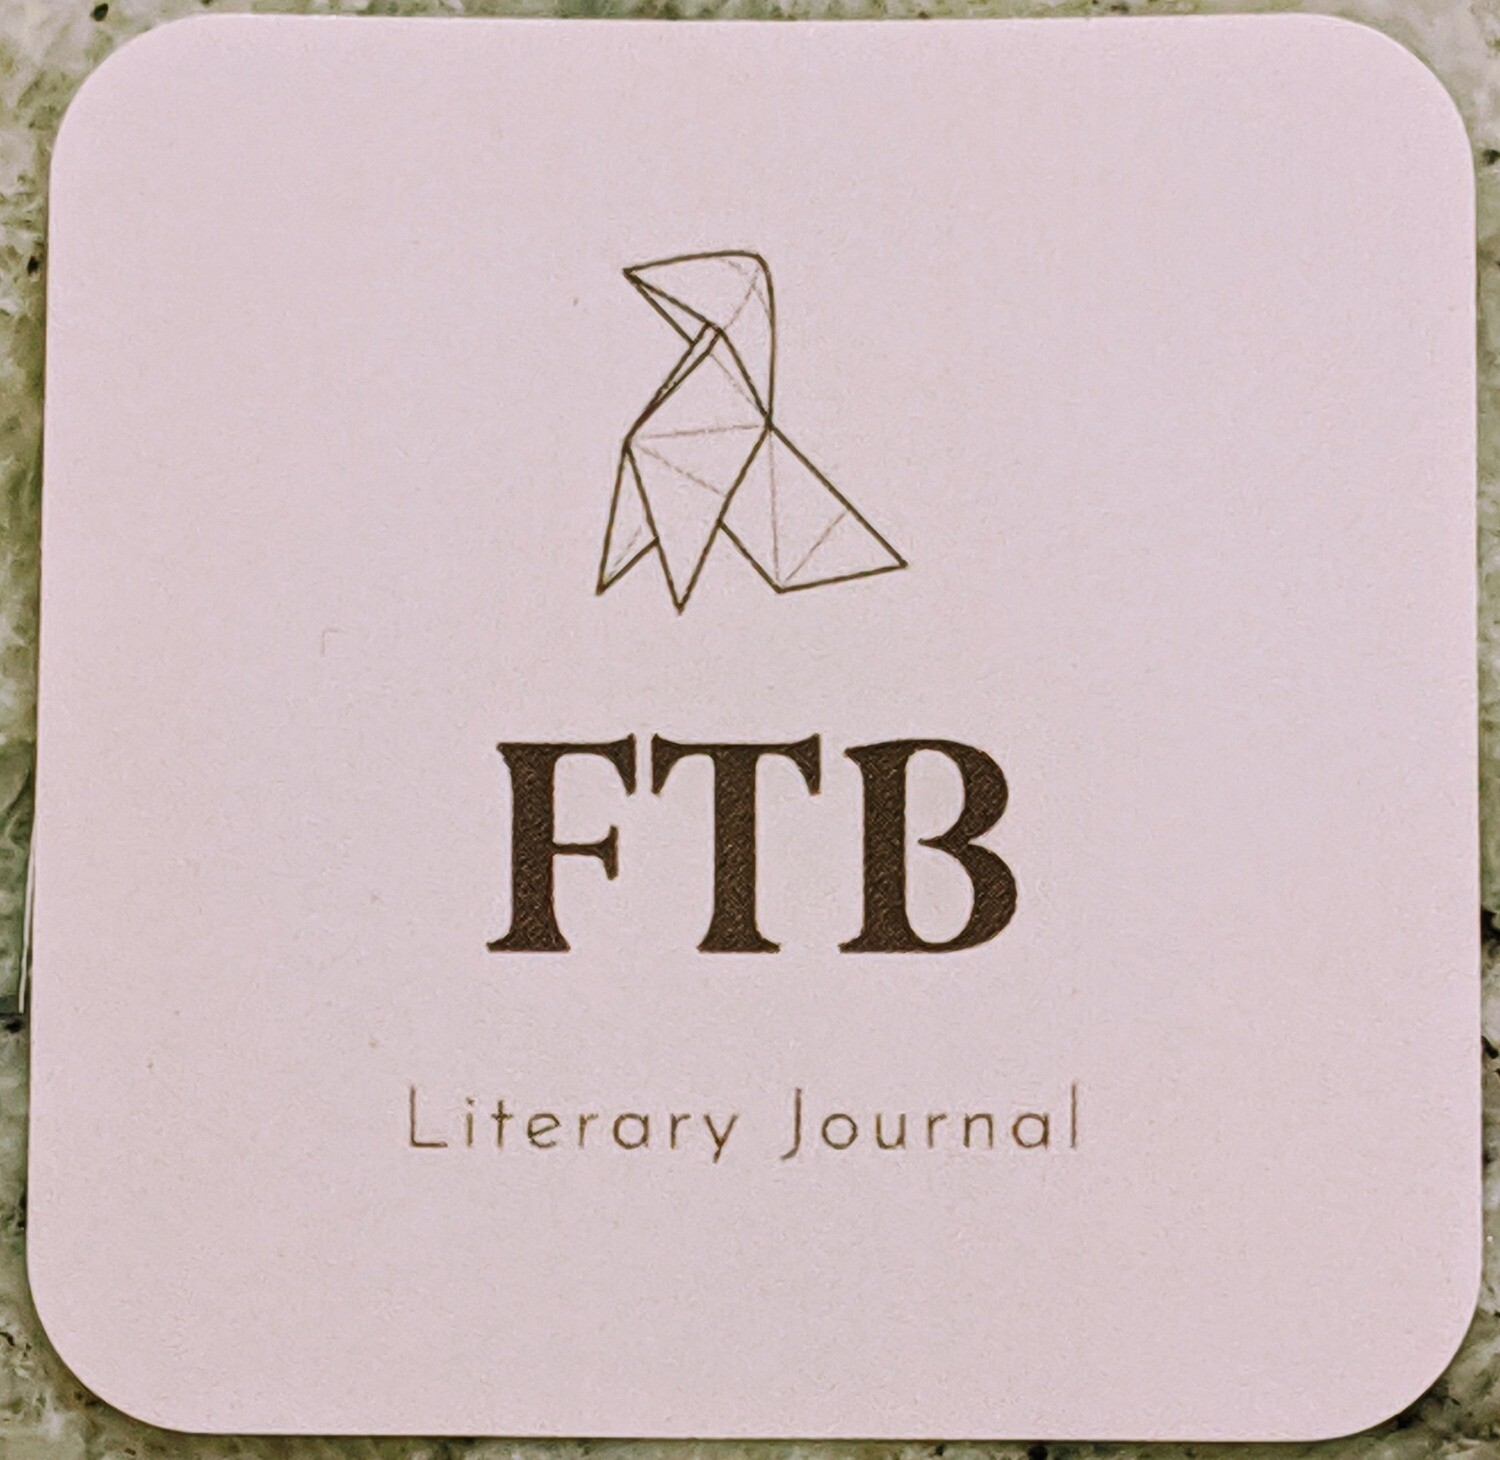 FTB Stickers!